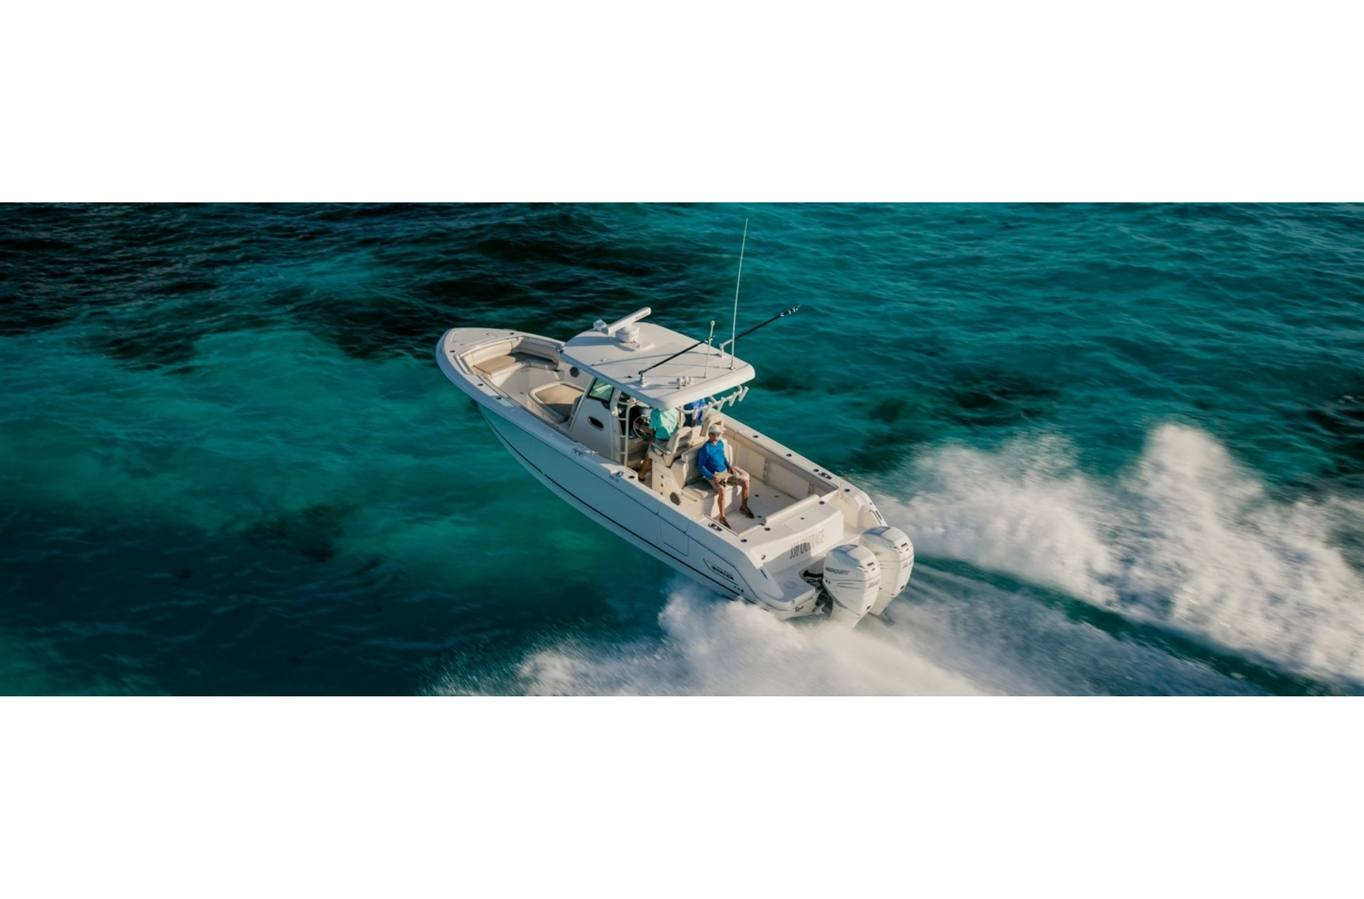 2019 Boston Whaler 330 Outrage for sale in Kailua, HI  Windward